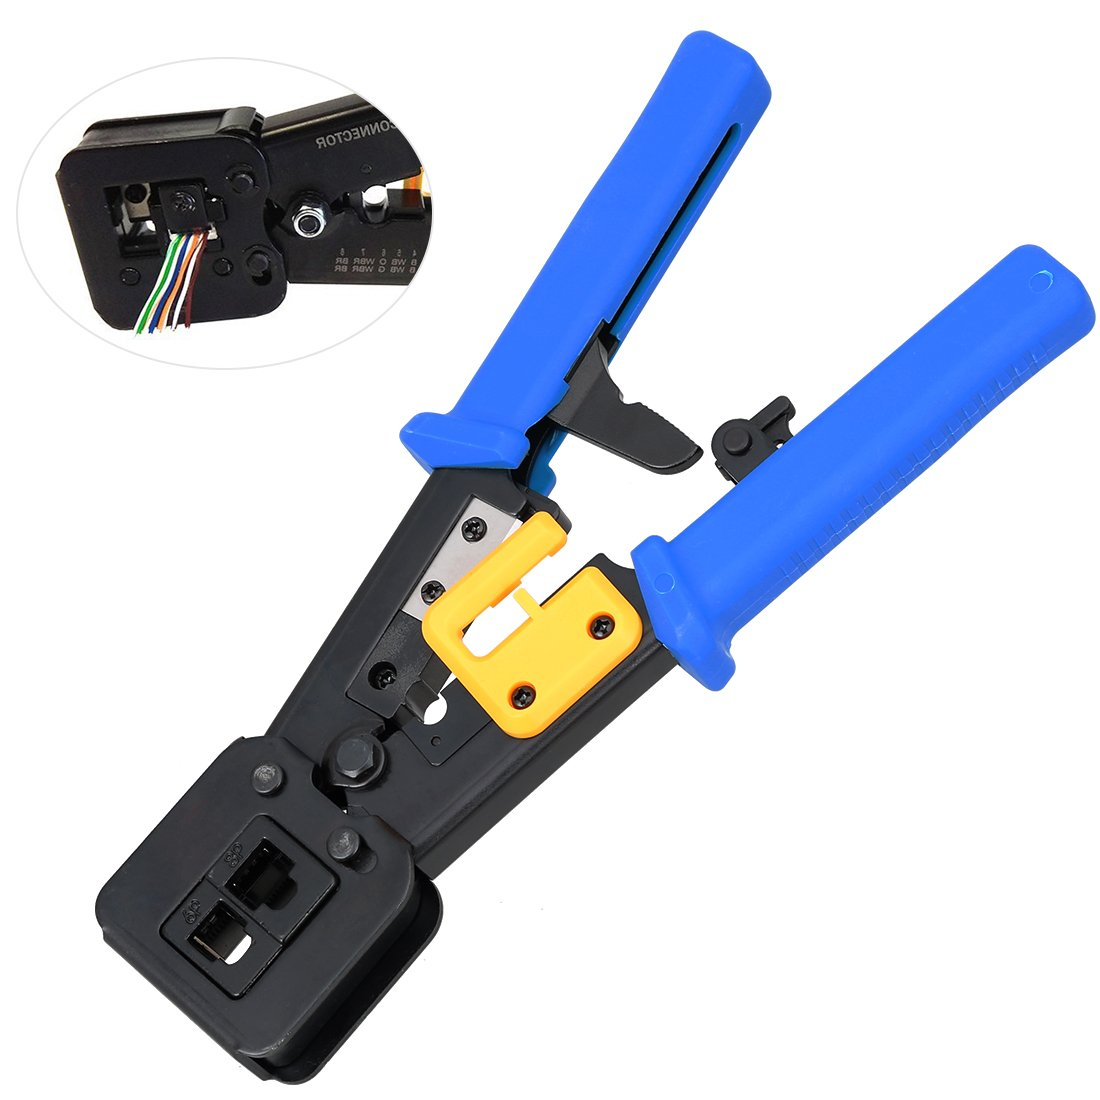 RJ45 Crimp Tool for RJ11/RJ12 Network and Telephone Cables EZ Pass-Through and Legacy connectors | Professional High Performance Crimper Tool SUPAREE